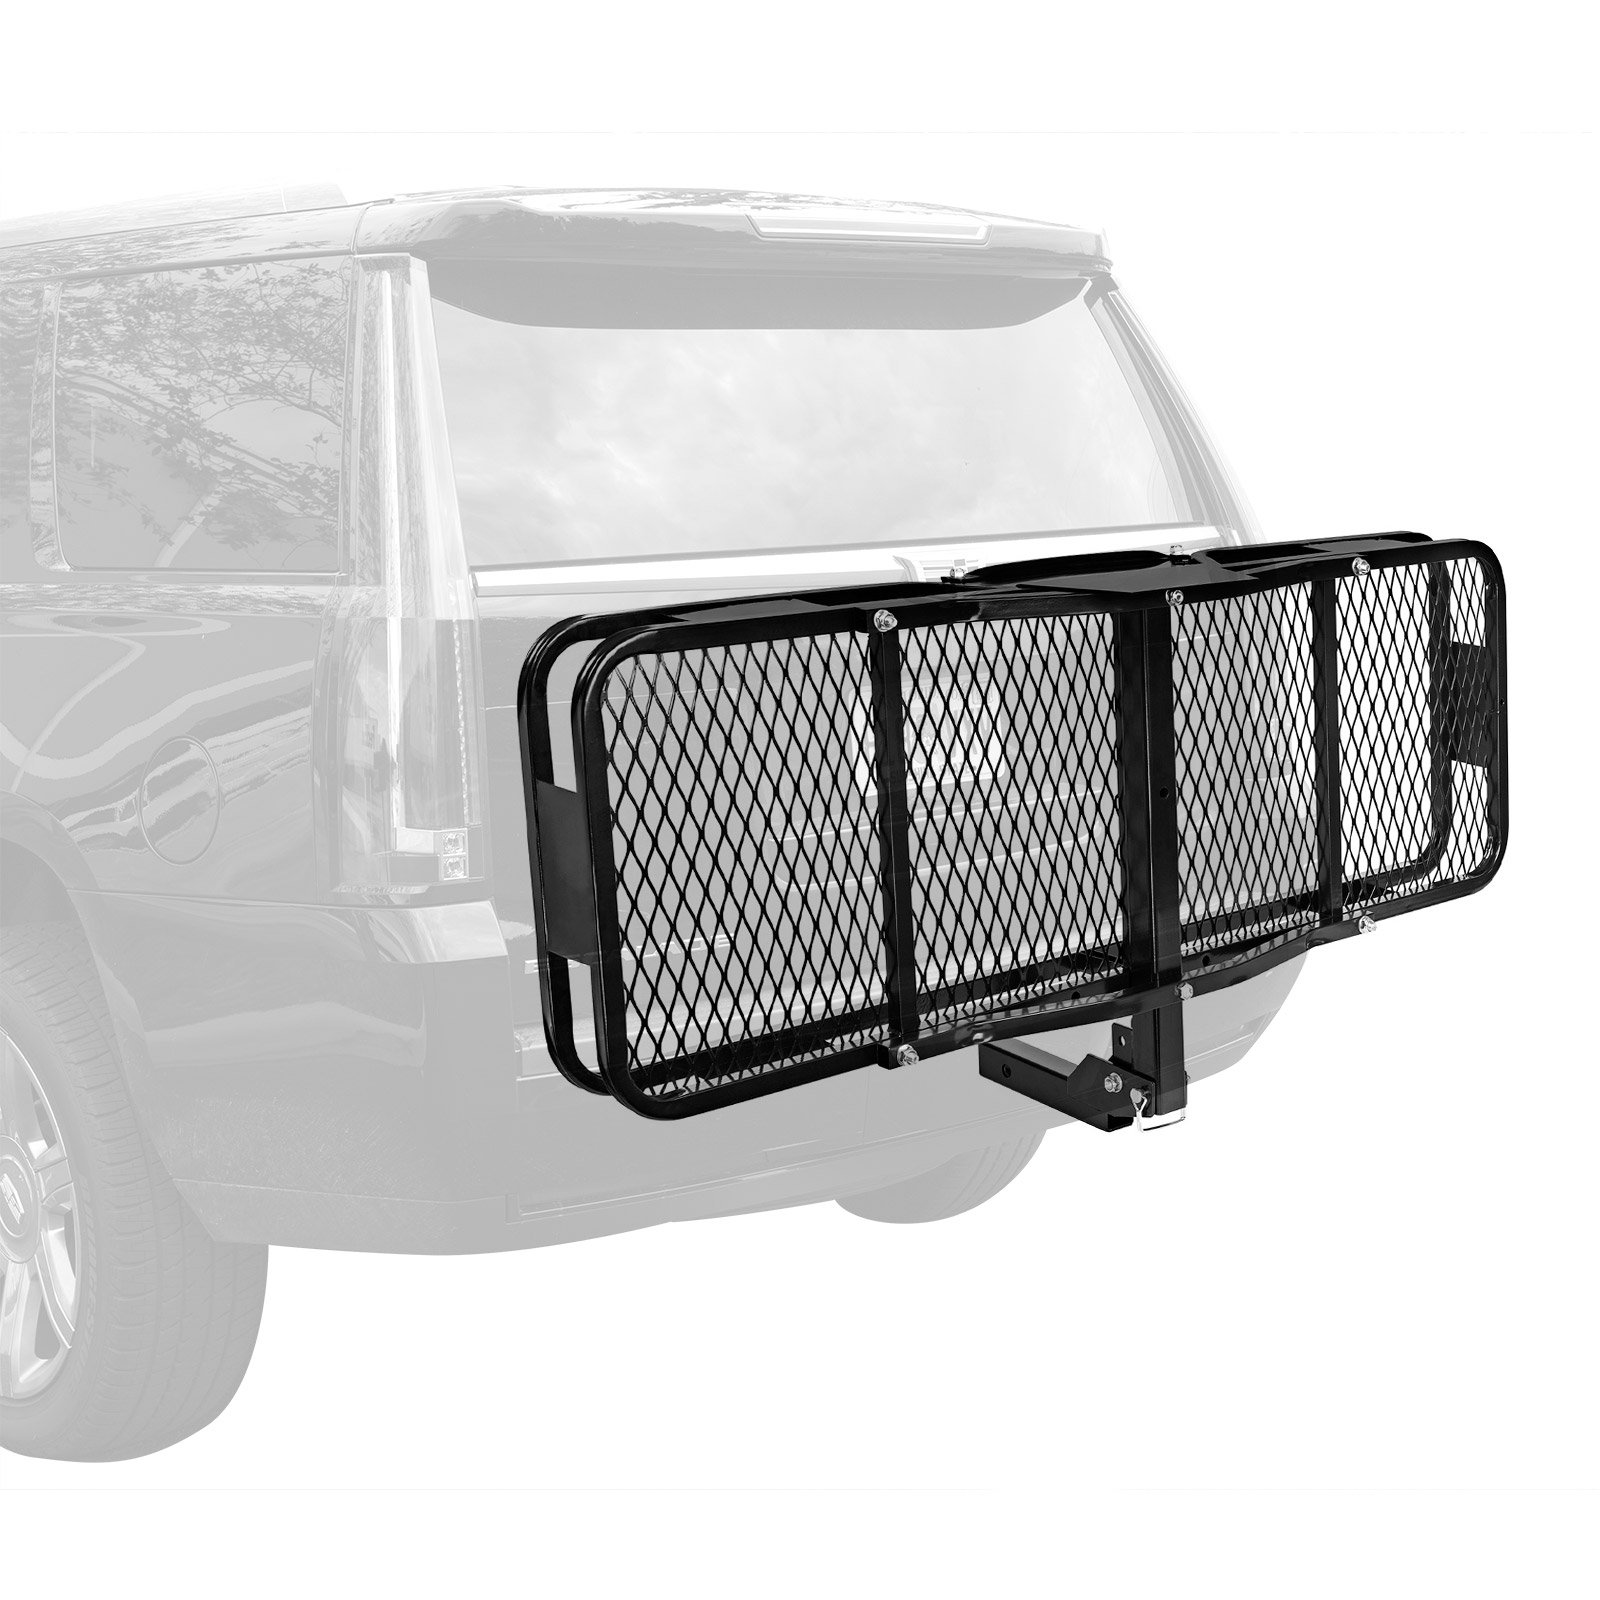 Direct Aftermarket Folding Hitch Cargo Carrier 60 inch Hauler 2 inch Receiver and Cargo Bag Combo by Direct Aftermarket (Image #3)